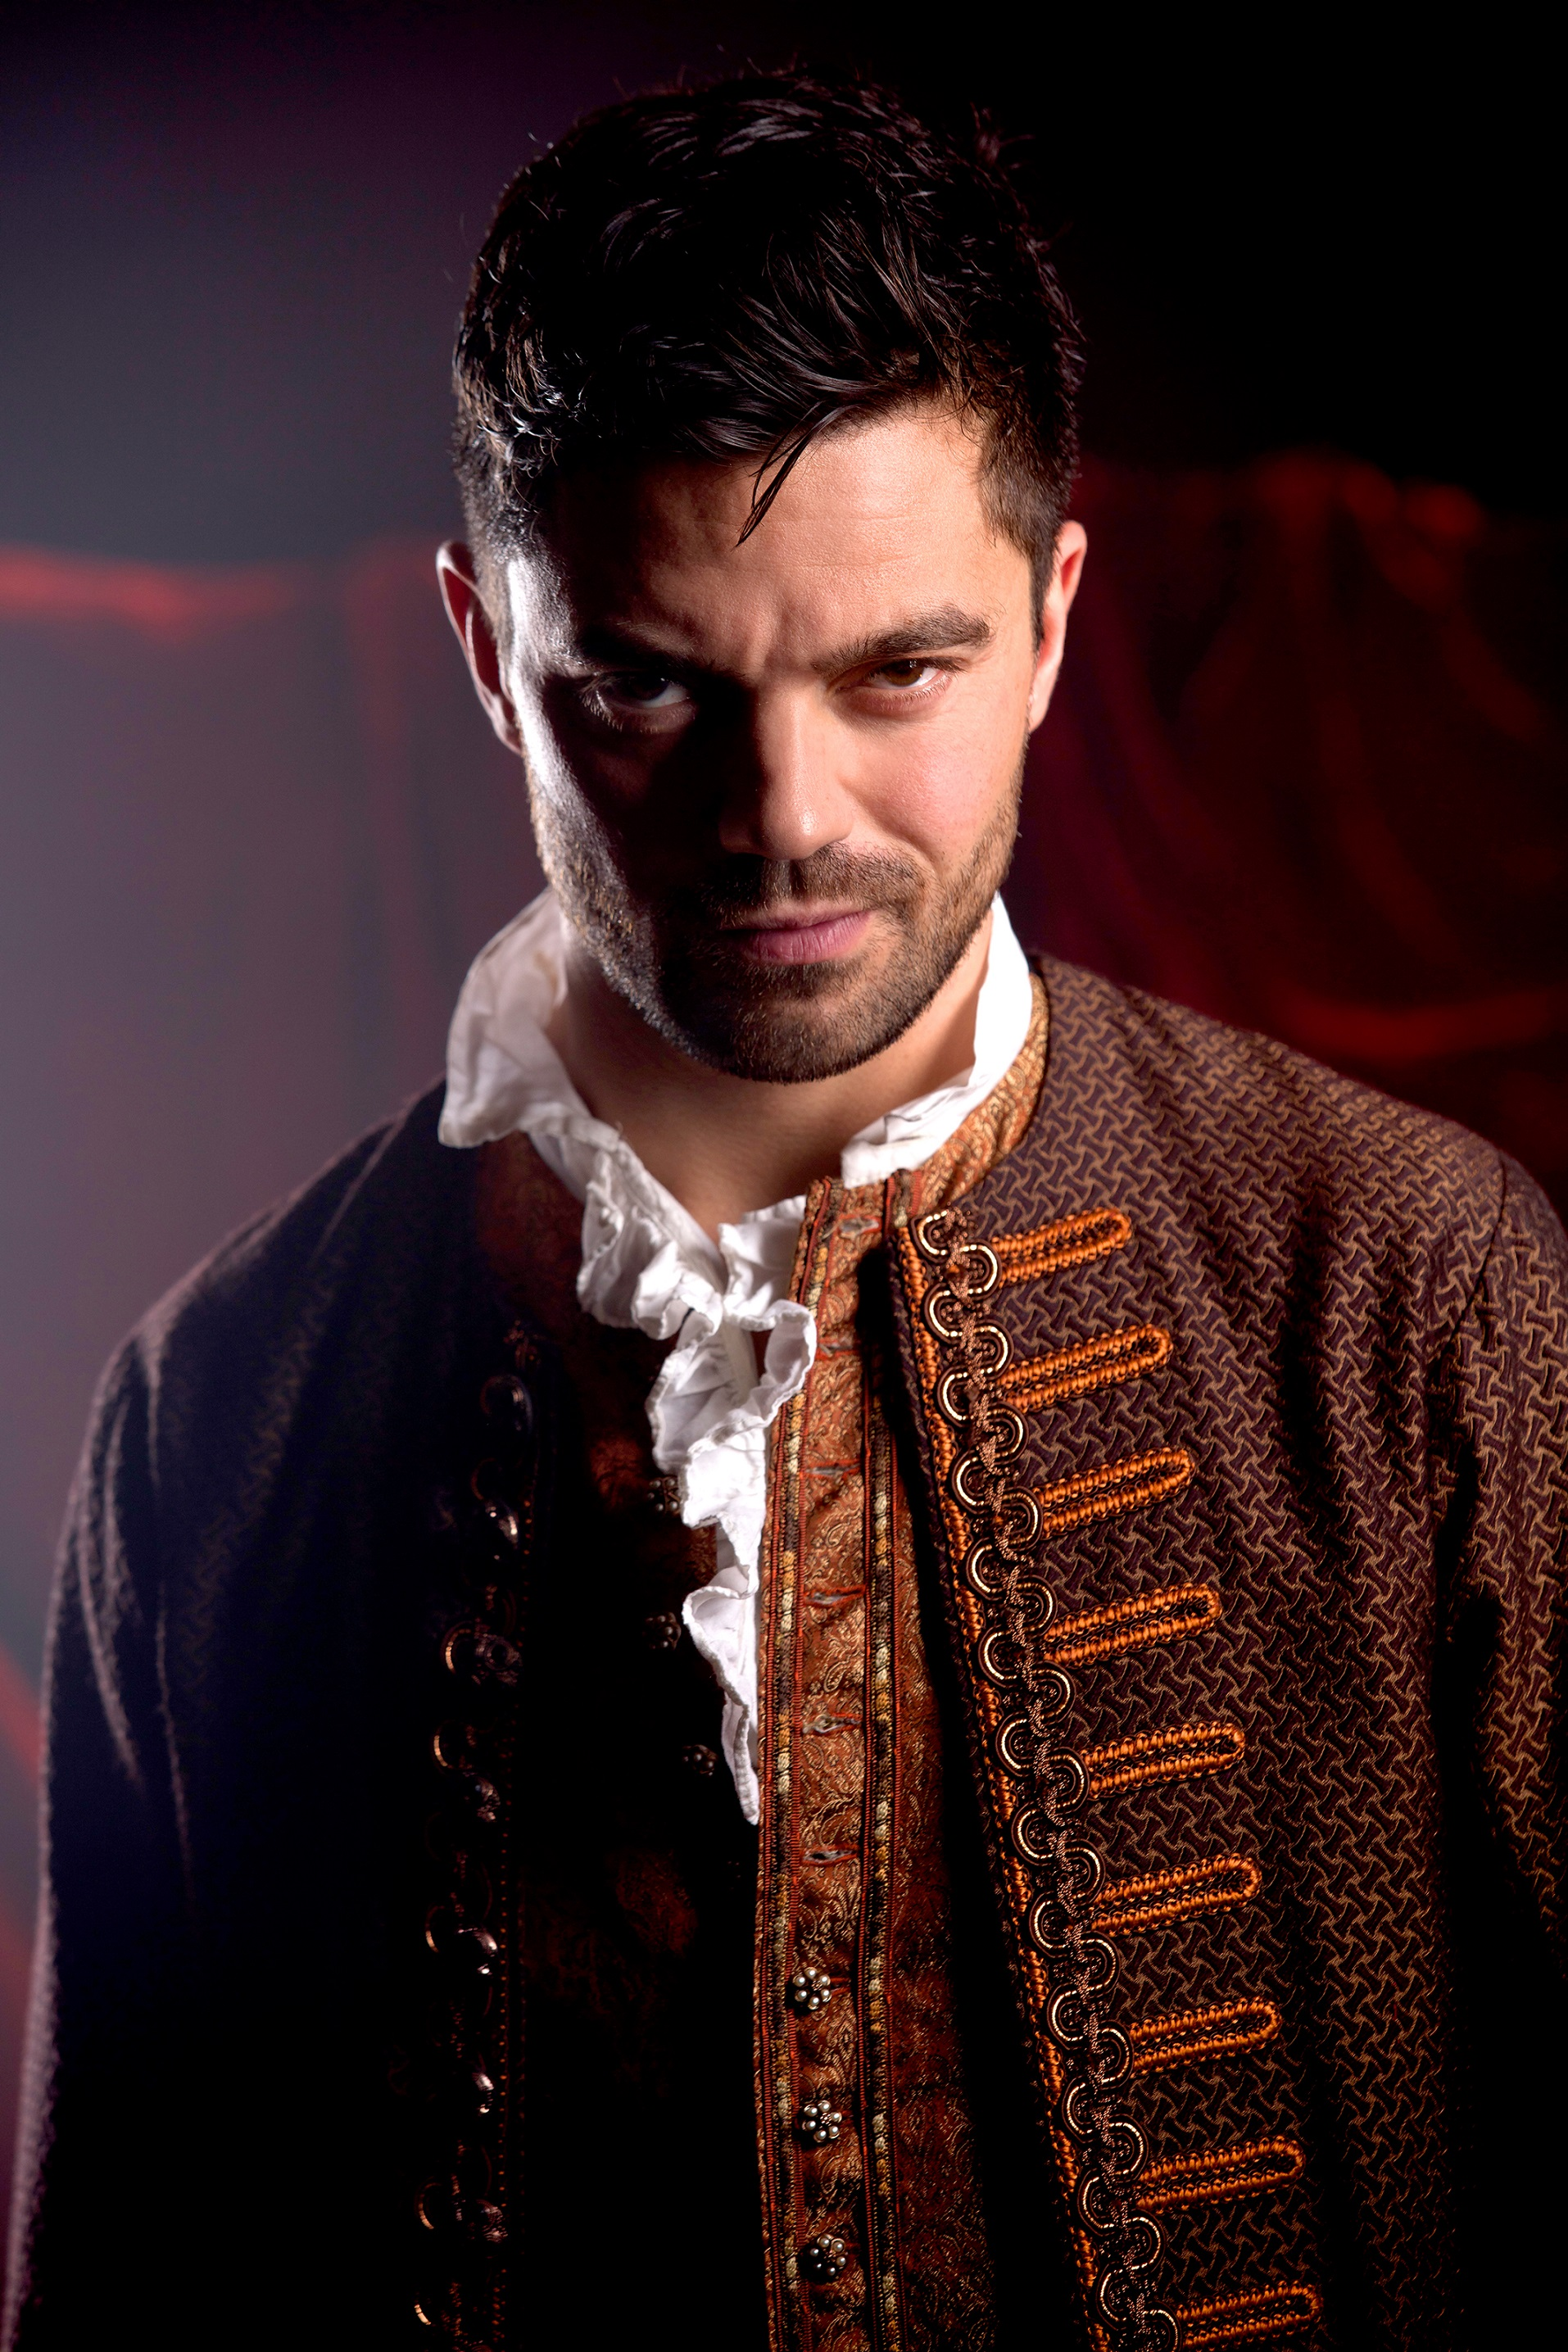 Dominic Cooper as The Libertine  2 Photo credit Johan Persson.jpg.jpg